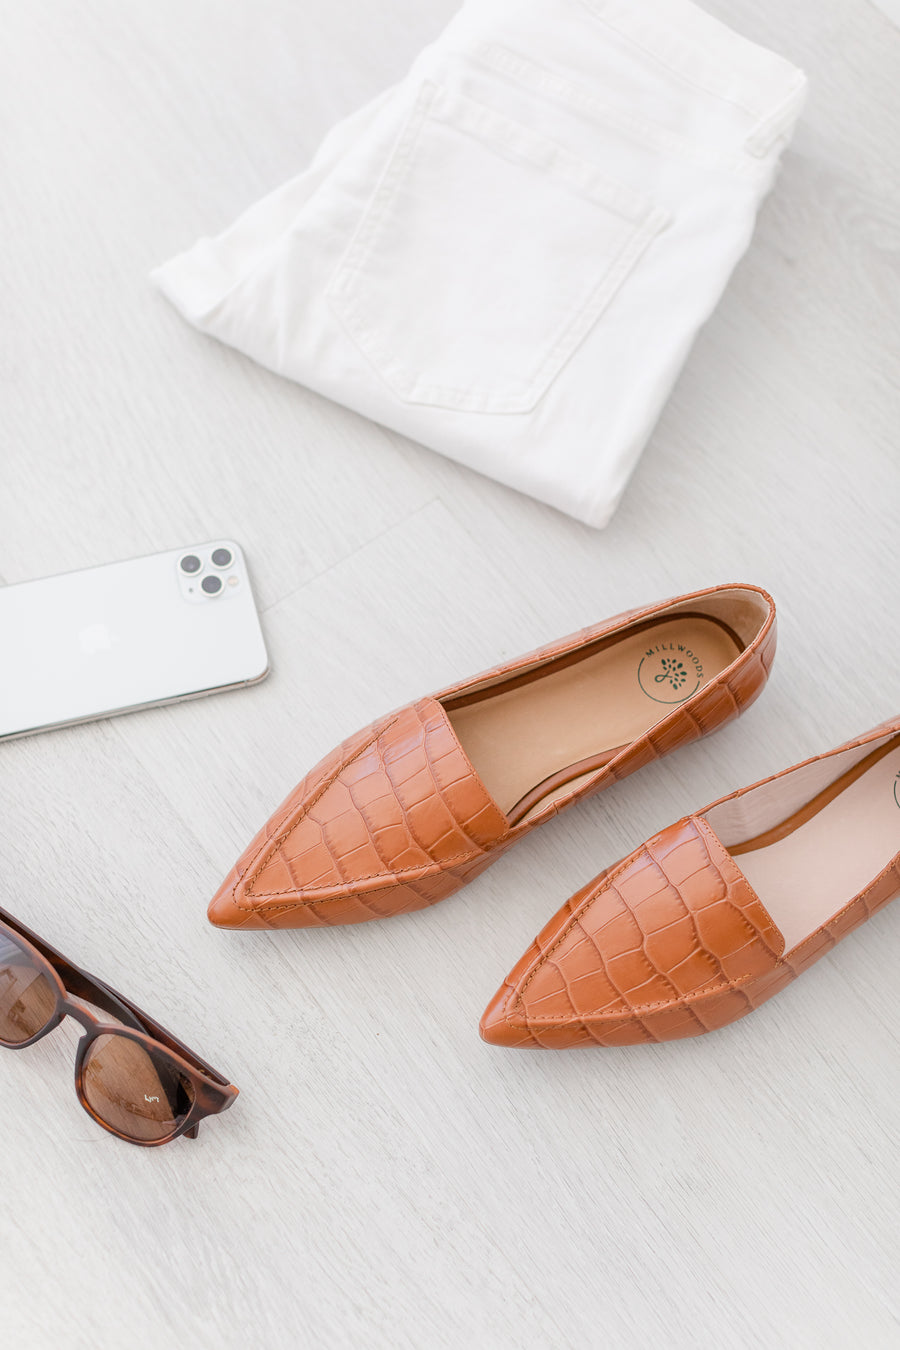 Limited Edition Tan Pointed Flat